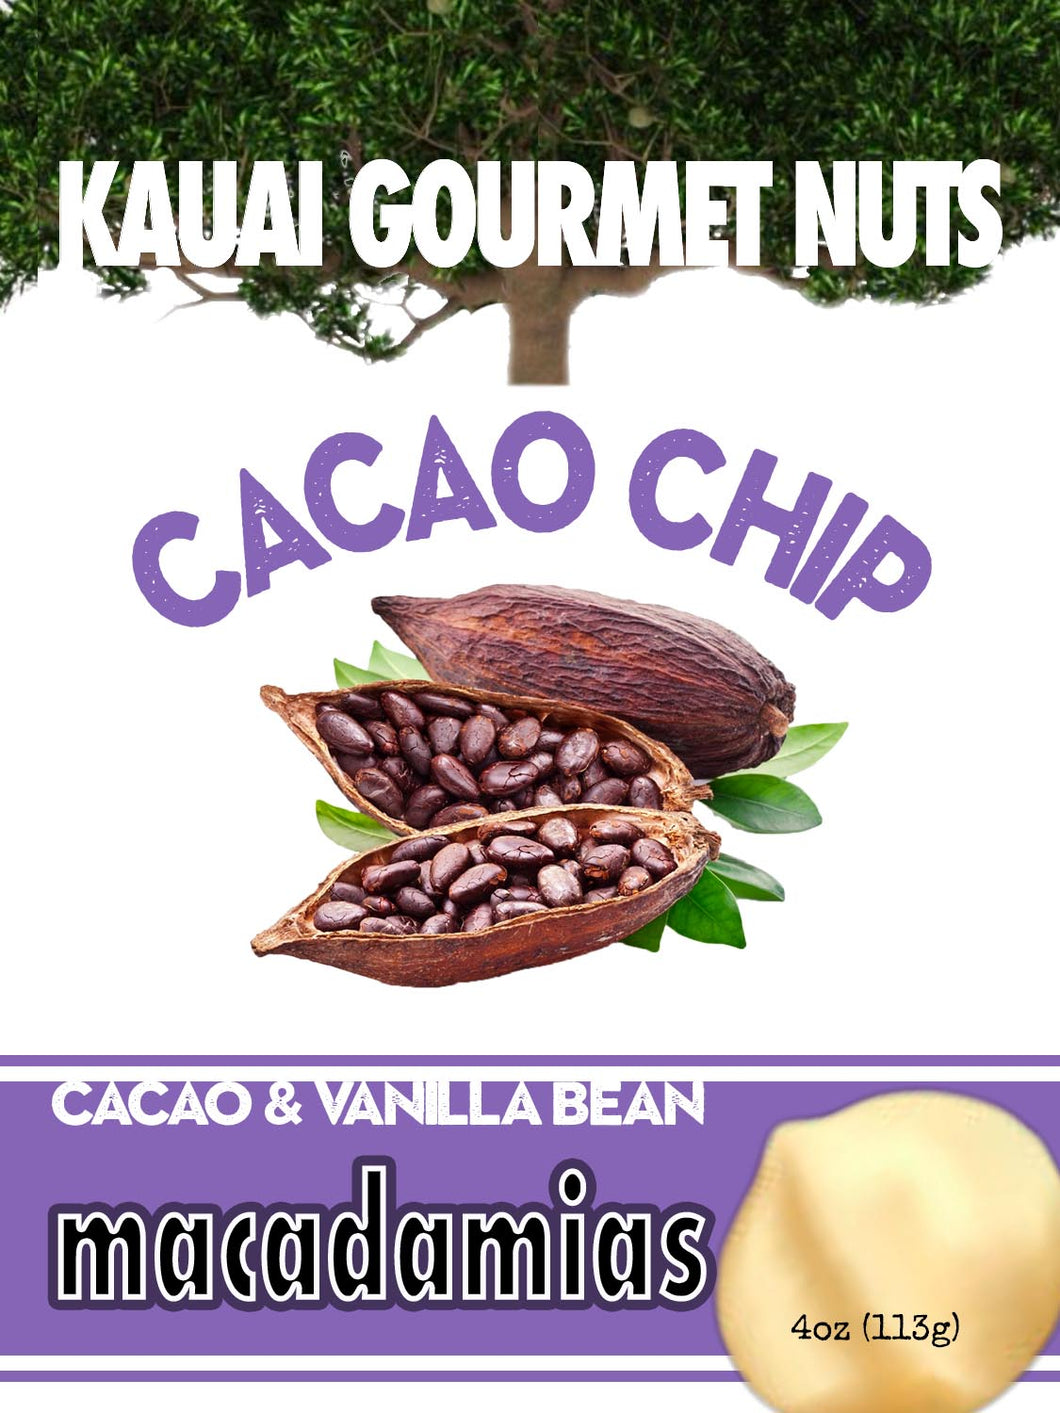 Cacao Chip Kauai Macadamias Hawaiian Nuts Vanila Bean Butterscotch Toffee Roasters